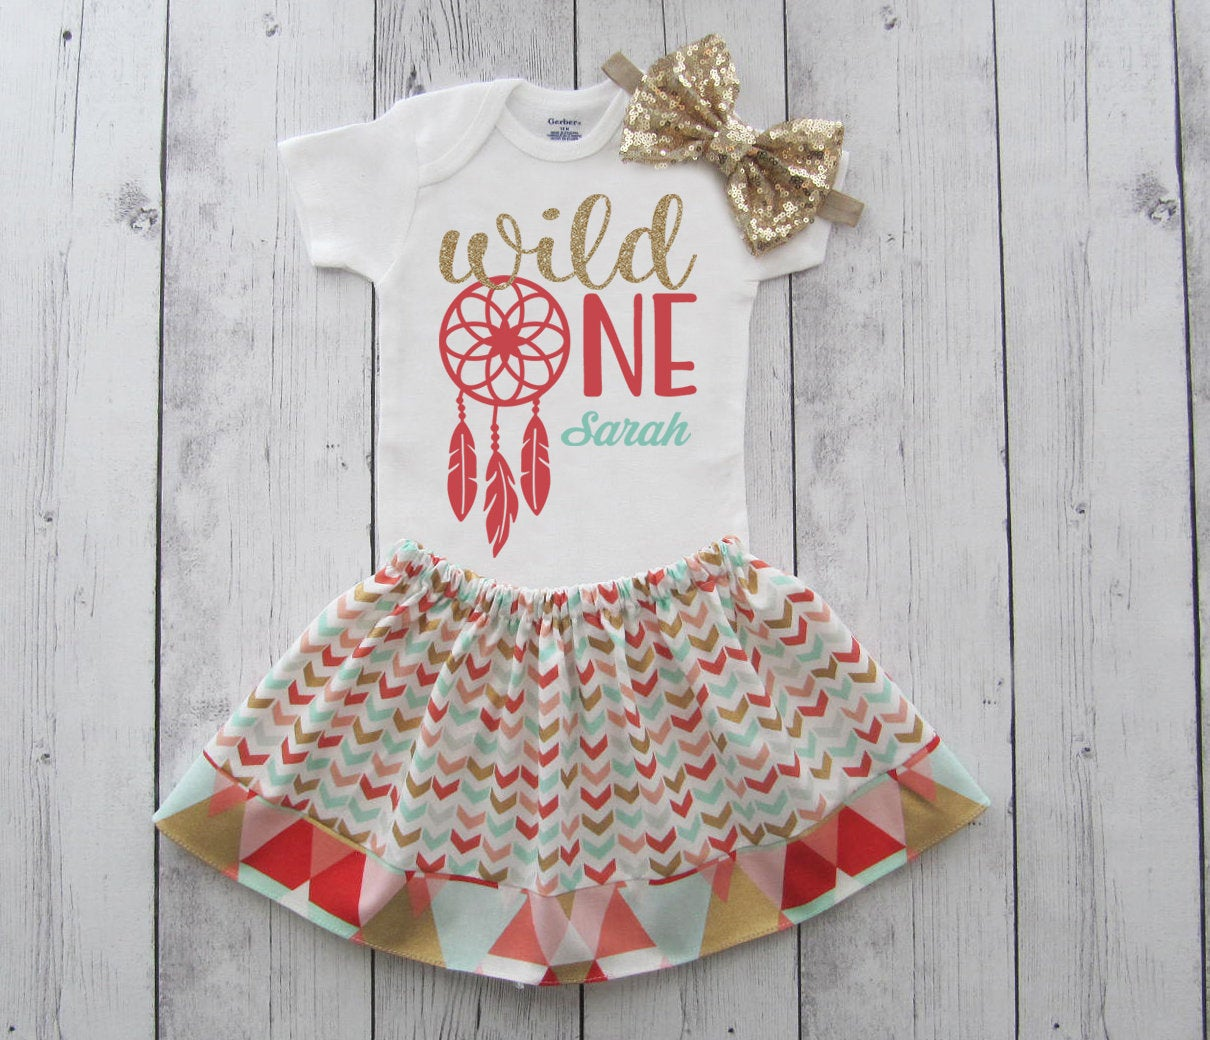 Wild One Dreamcatcher Birthday Outfit in coral, mint and gold glitter - girl first bday outfit, boho chic, wild one girl outfit,personalized